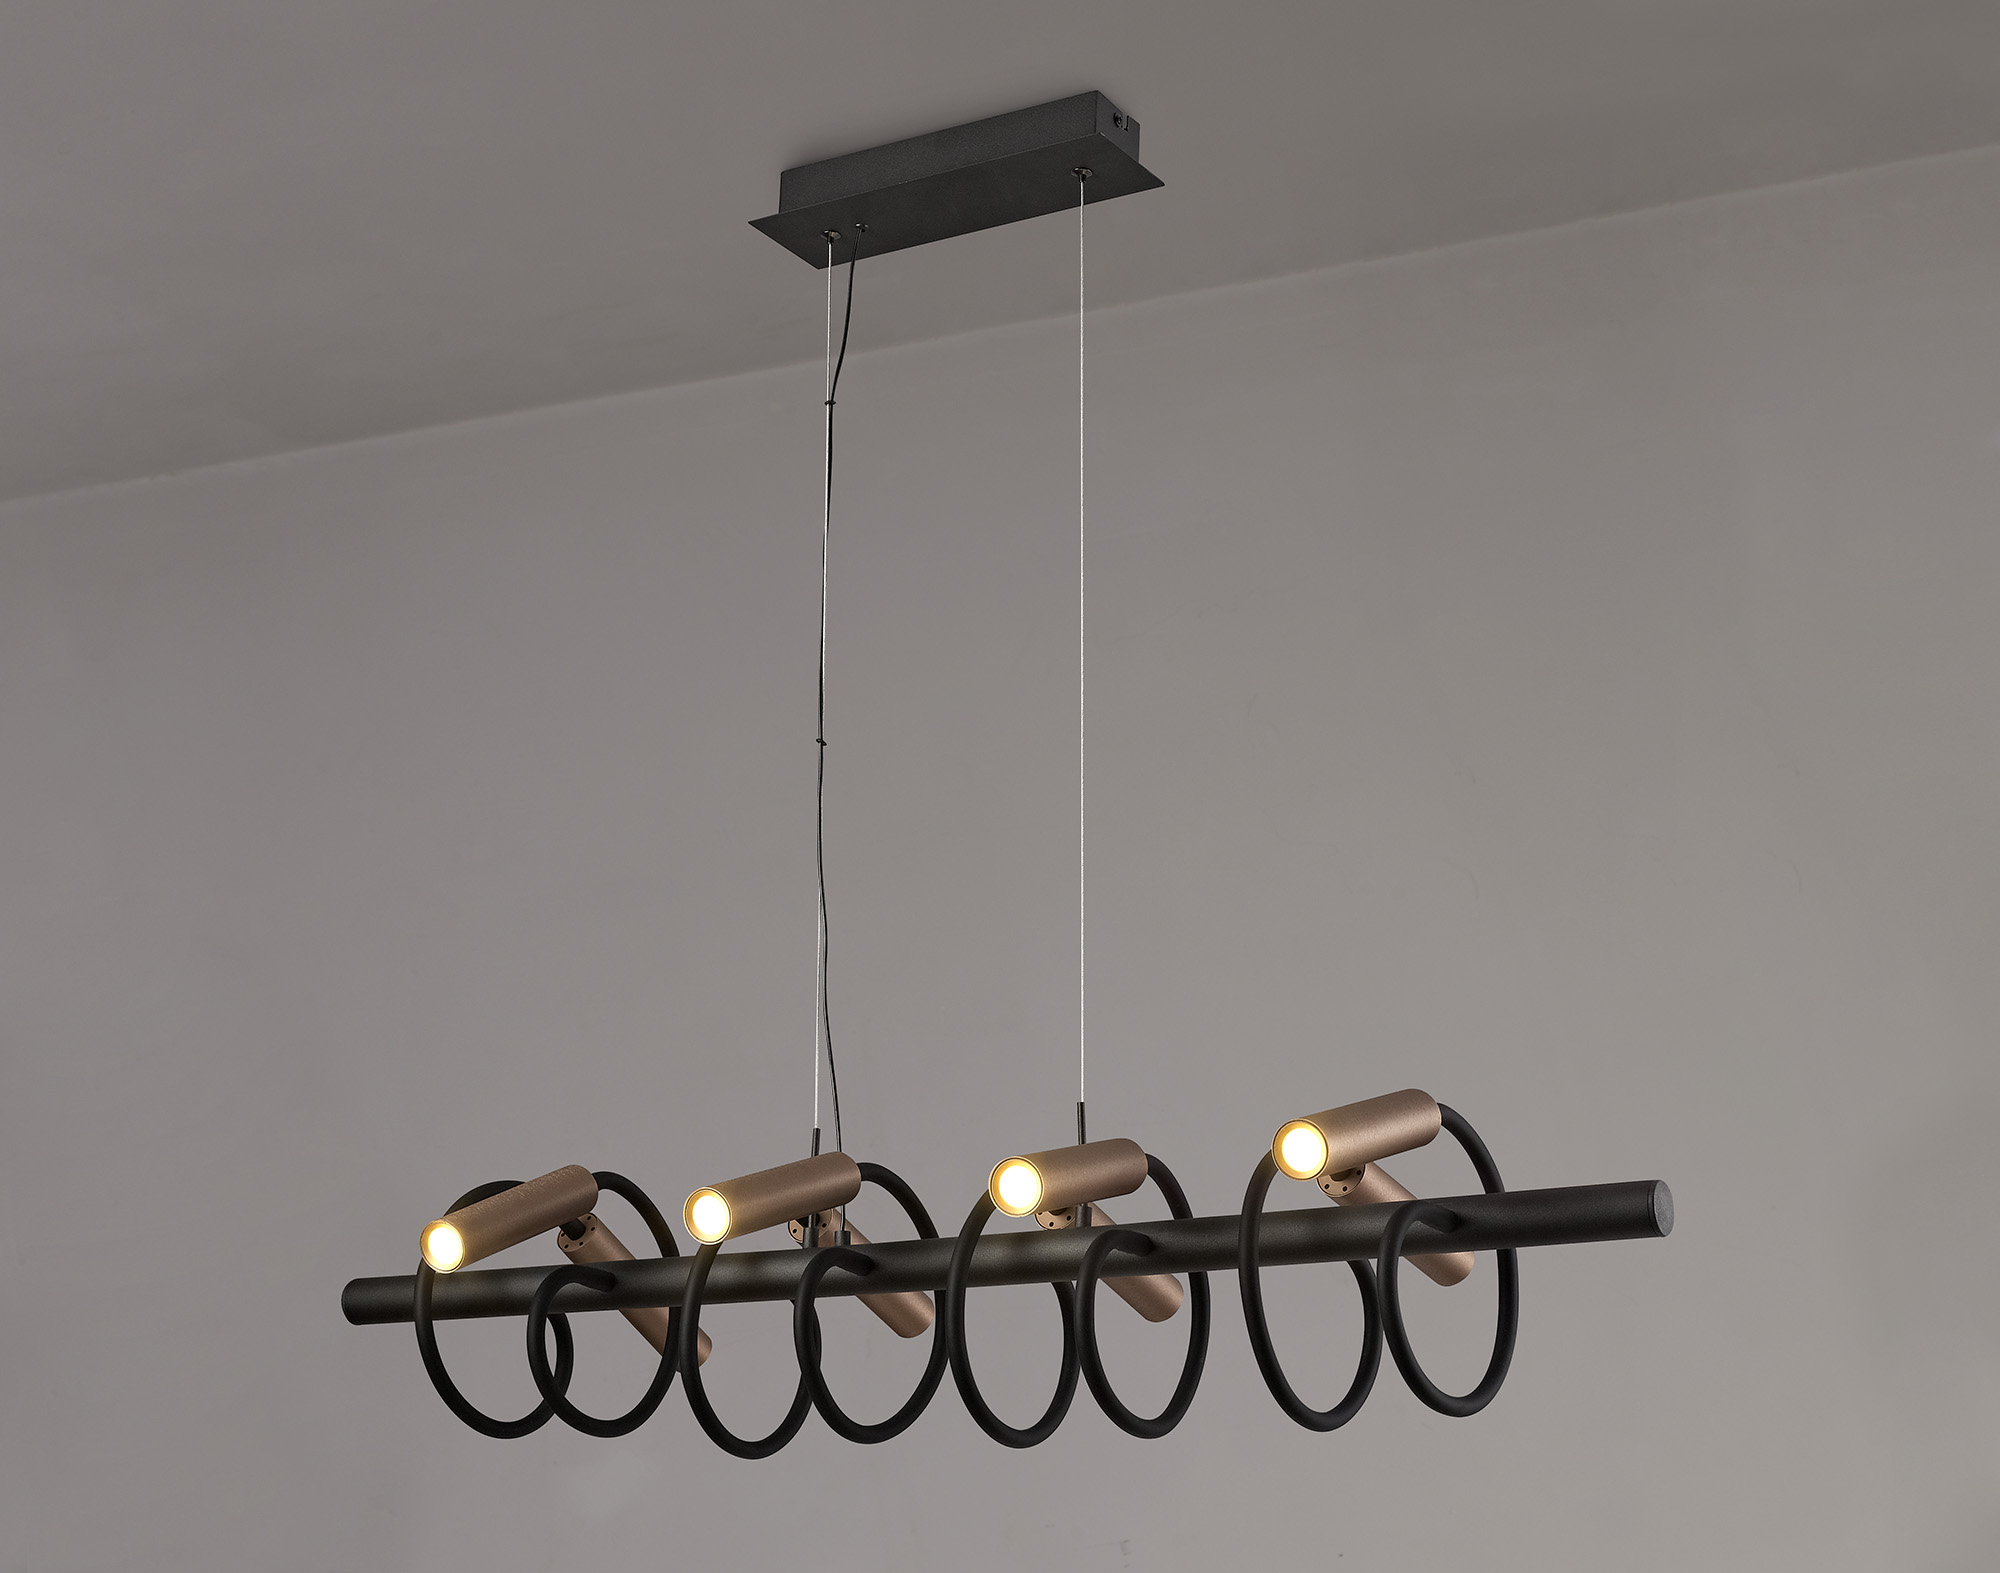 Linear Pendant, 8 Light Adjustable Arms, 8 x 4W LED Dimmable, 3000K, 2000lm, 3yrs Warranty